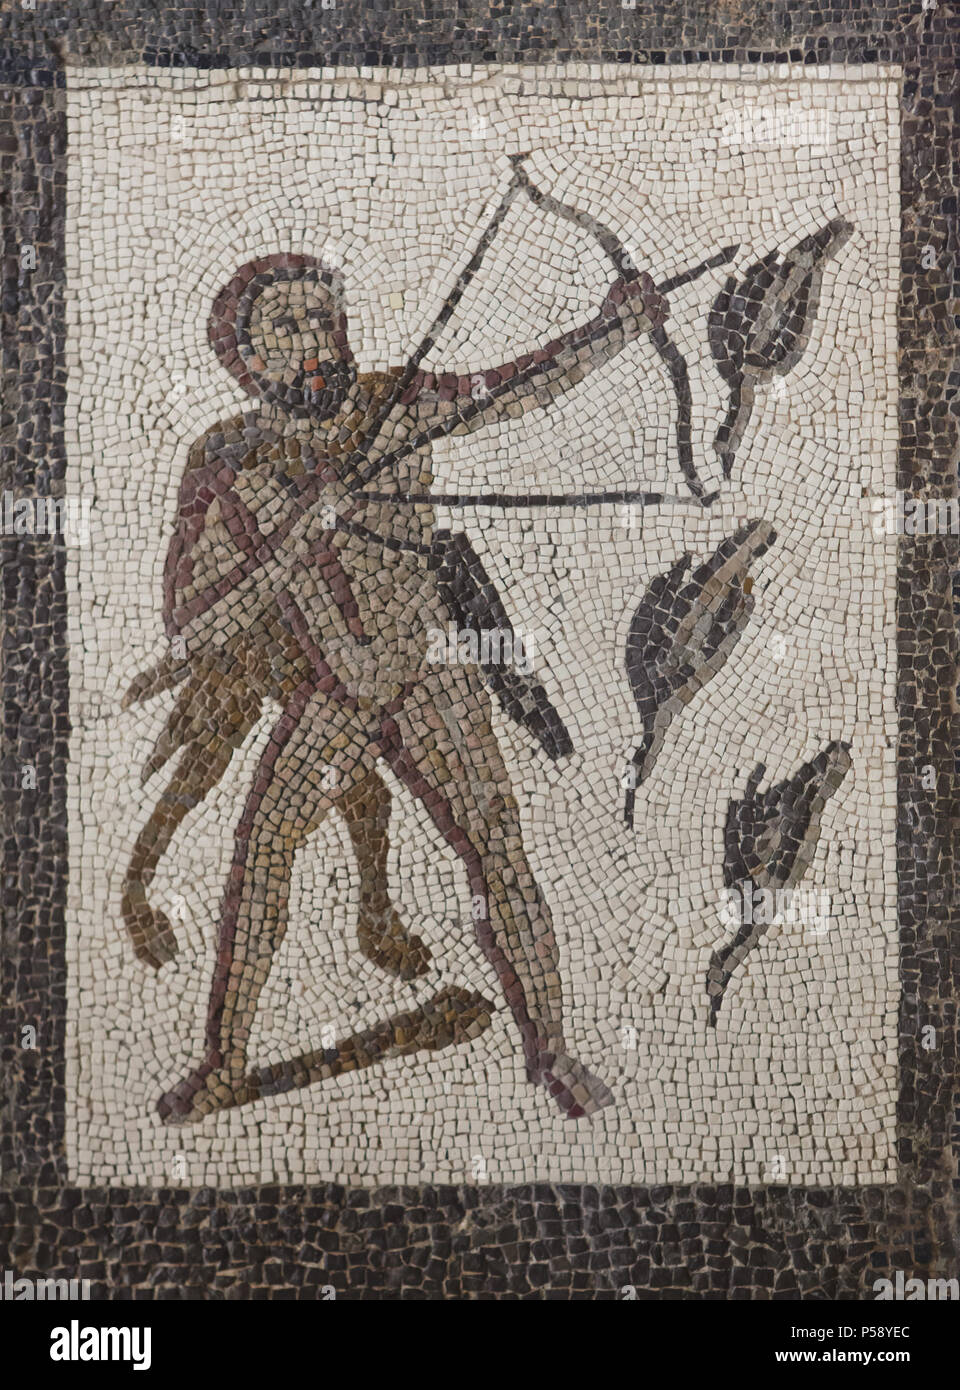 Heracles killing the Stymphalian Birds. Labours of Heracles depicted in the Roman mosaic dated from the 3rd century AD from Llíria (Valencia Province, Spain) on display in the National Archaeological Museum (Museo Arqueológico Nacional) in Madrid, Spain. Stock Photo